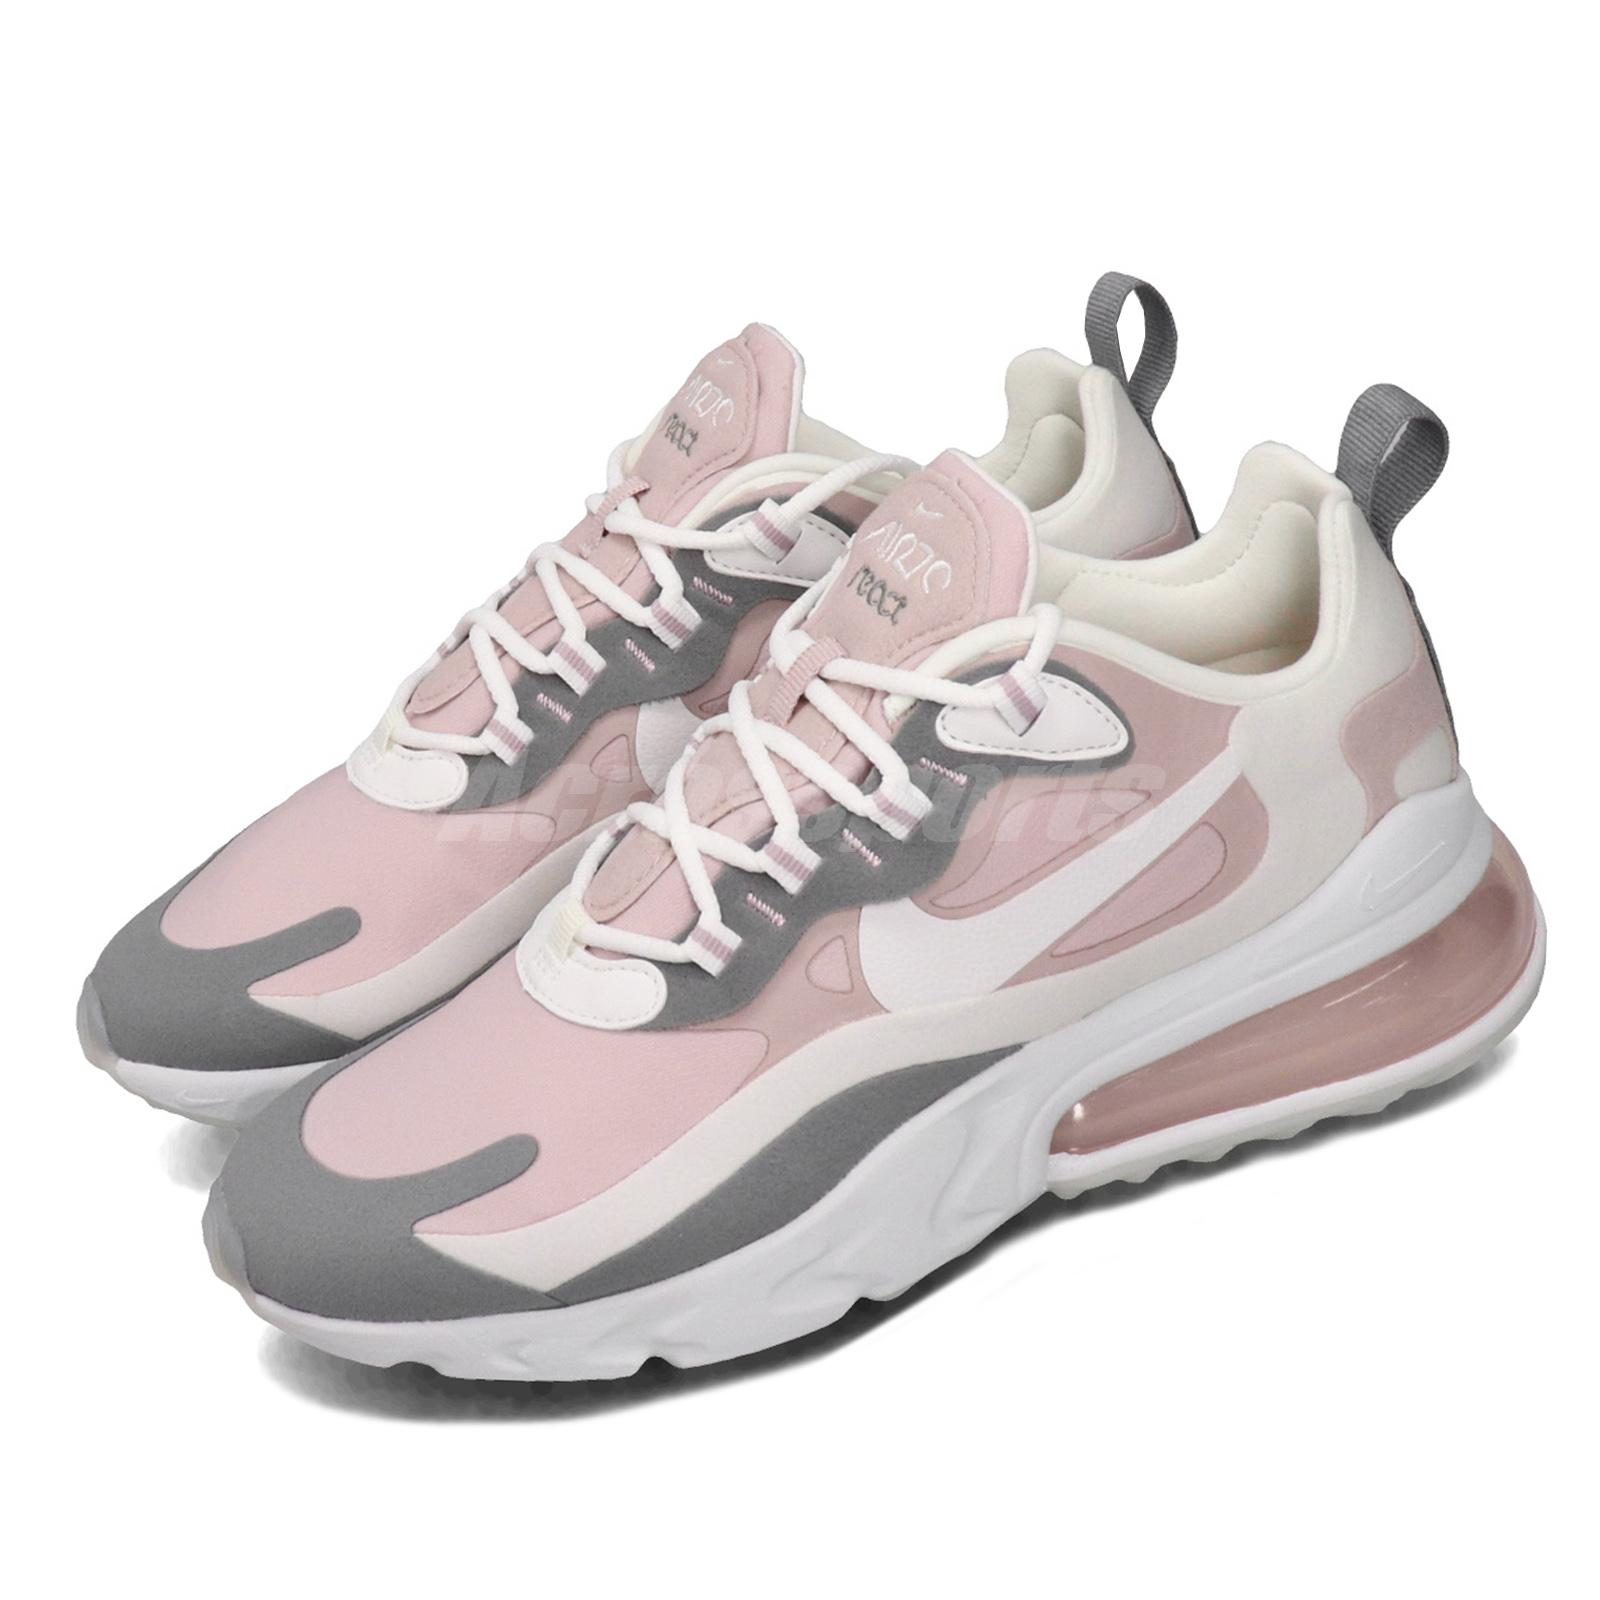 Nike Wmns Air Max 270 React Plum Chalk White Pink Womens Running